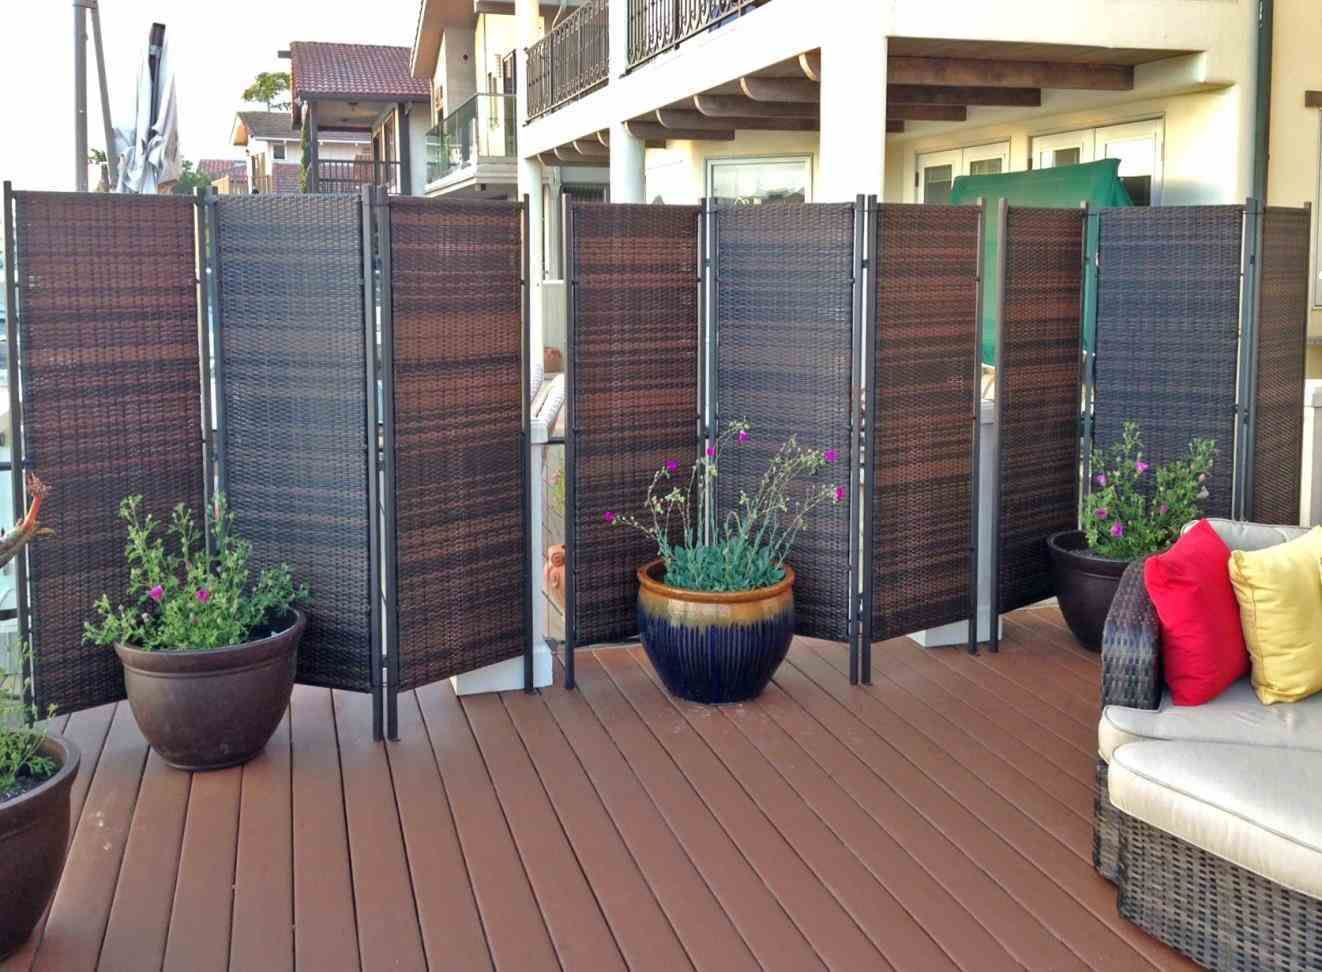 uncategorized privacy ideas for backyards incredible ...